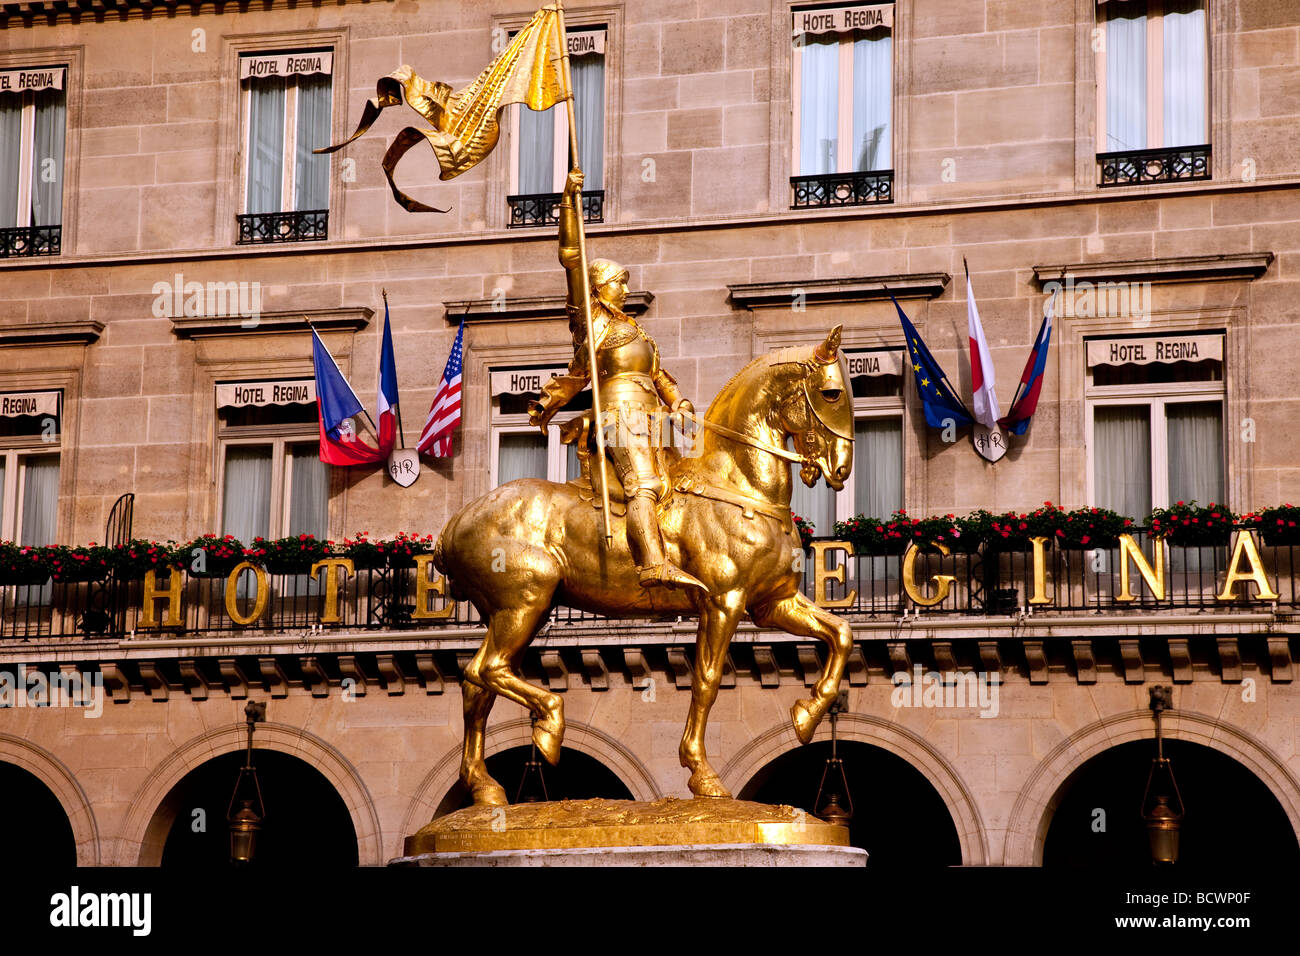 Gilded statue of Joan of Arc, Paris France - Stock Image